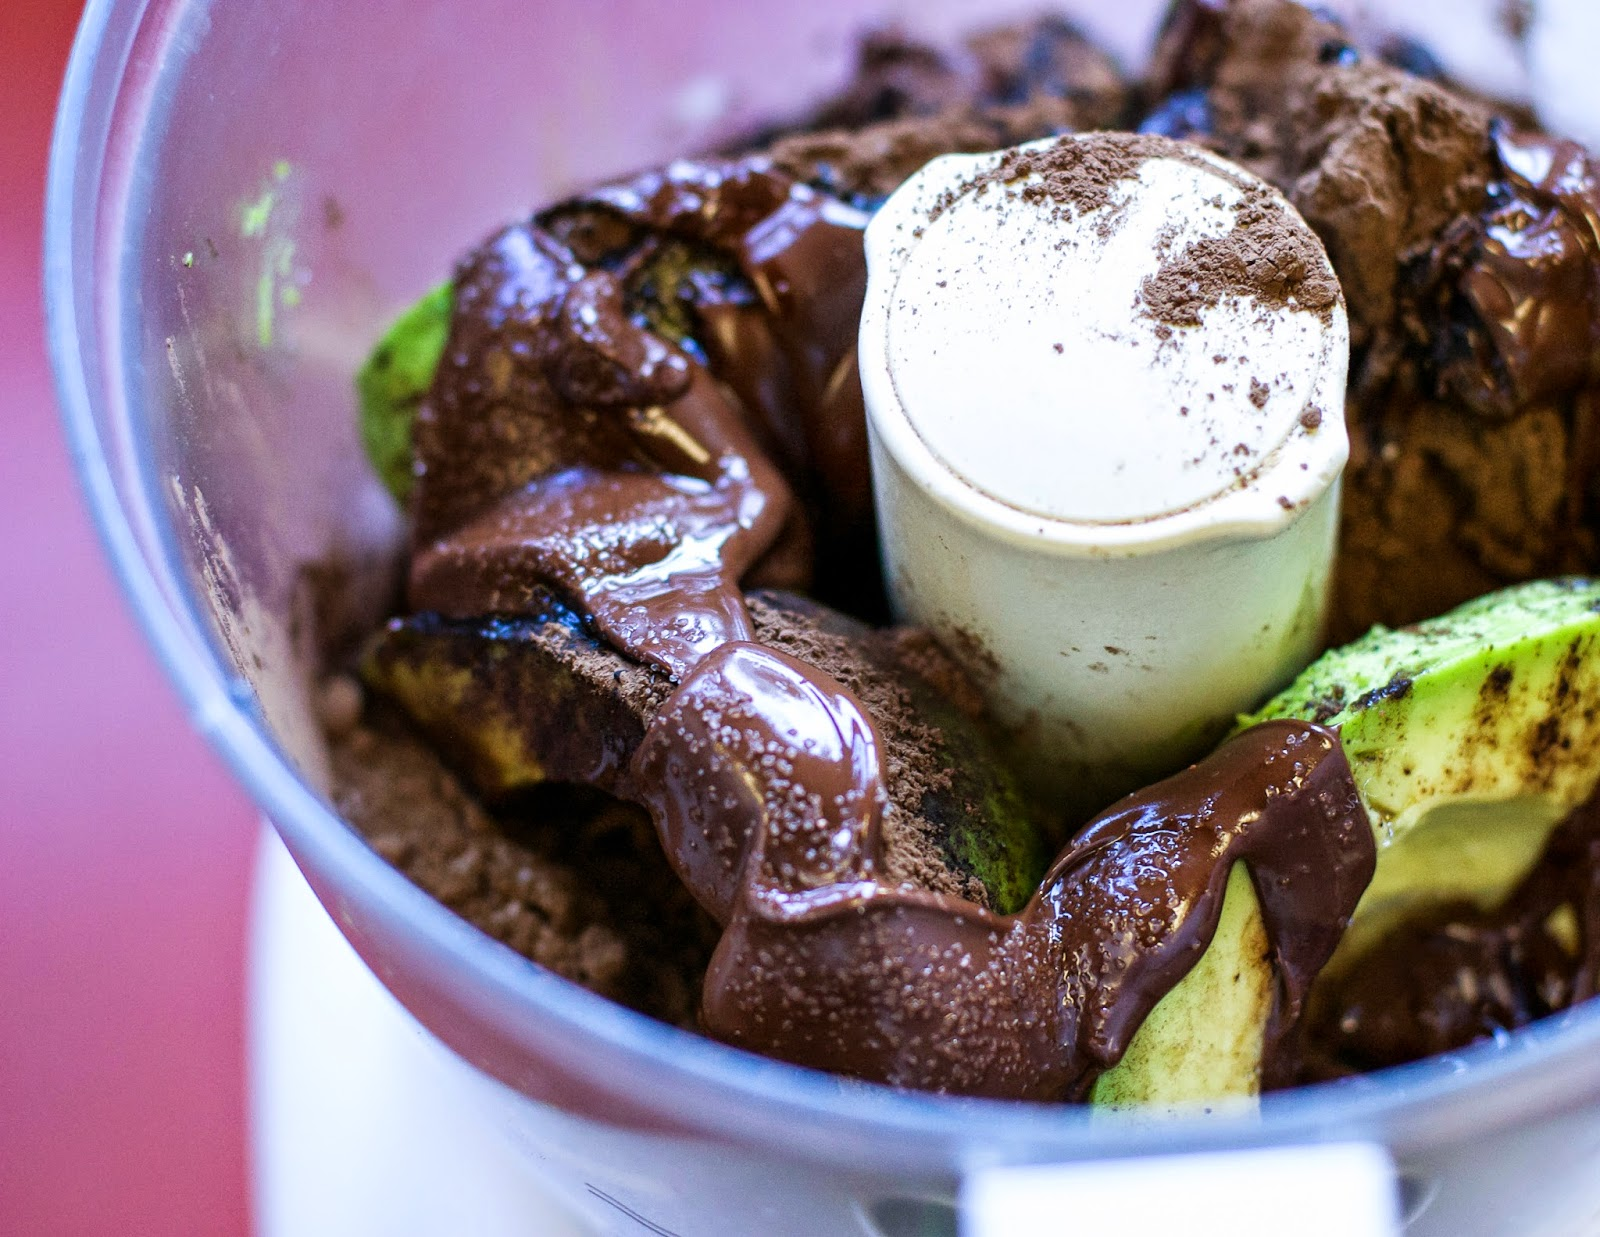 Decadent Chocolate Avocado Mousse